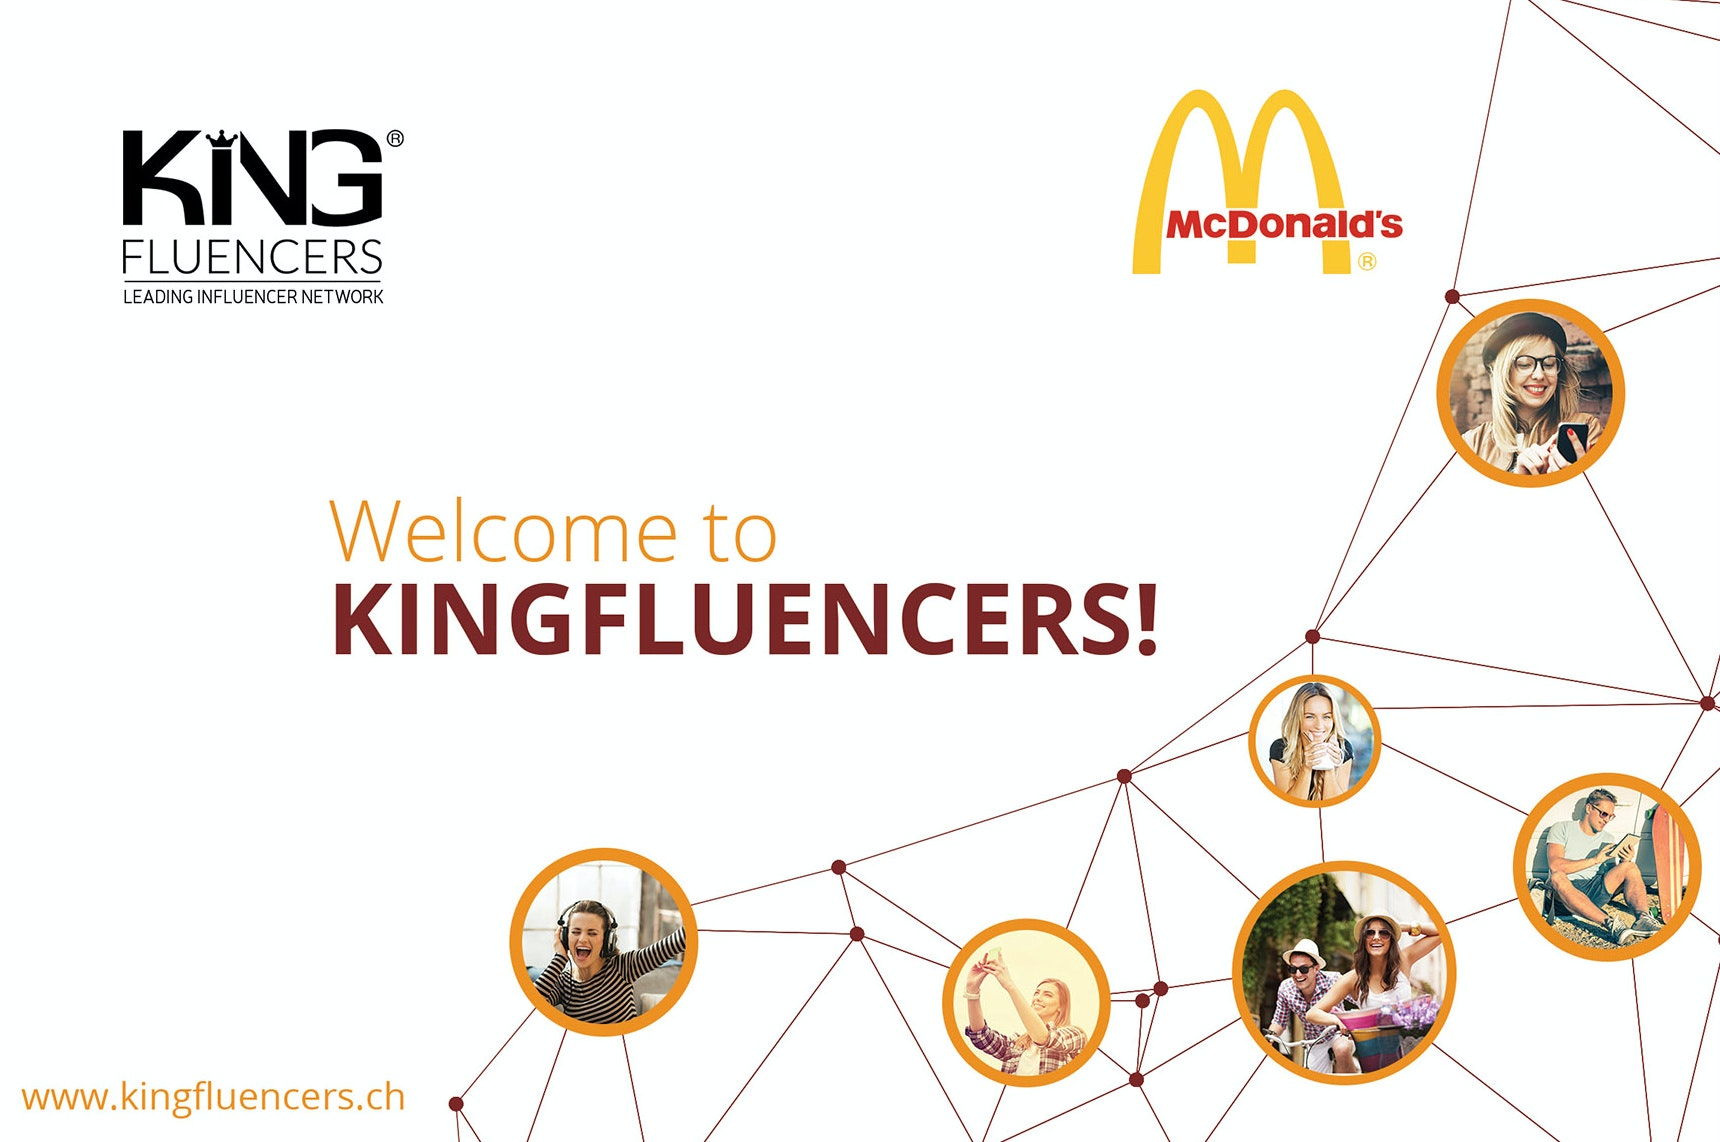 Kingfluencers web page design